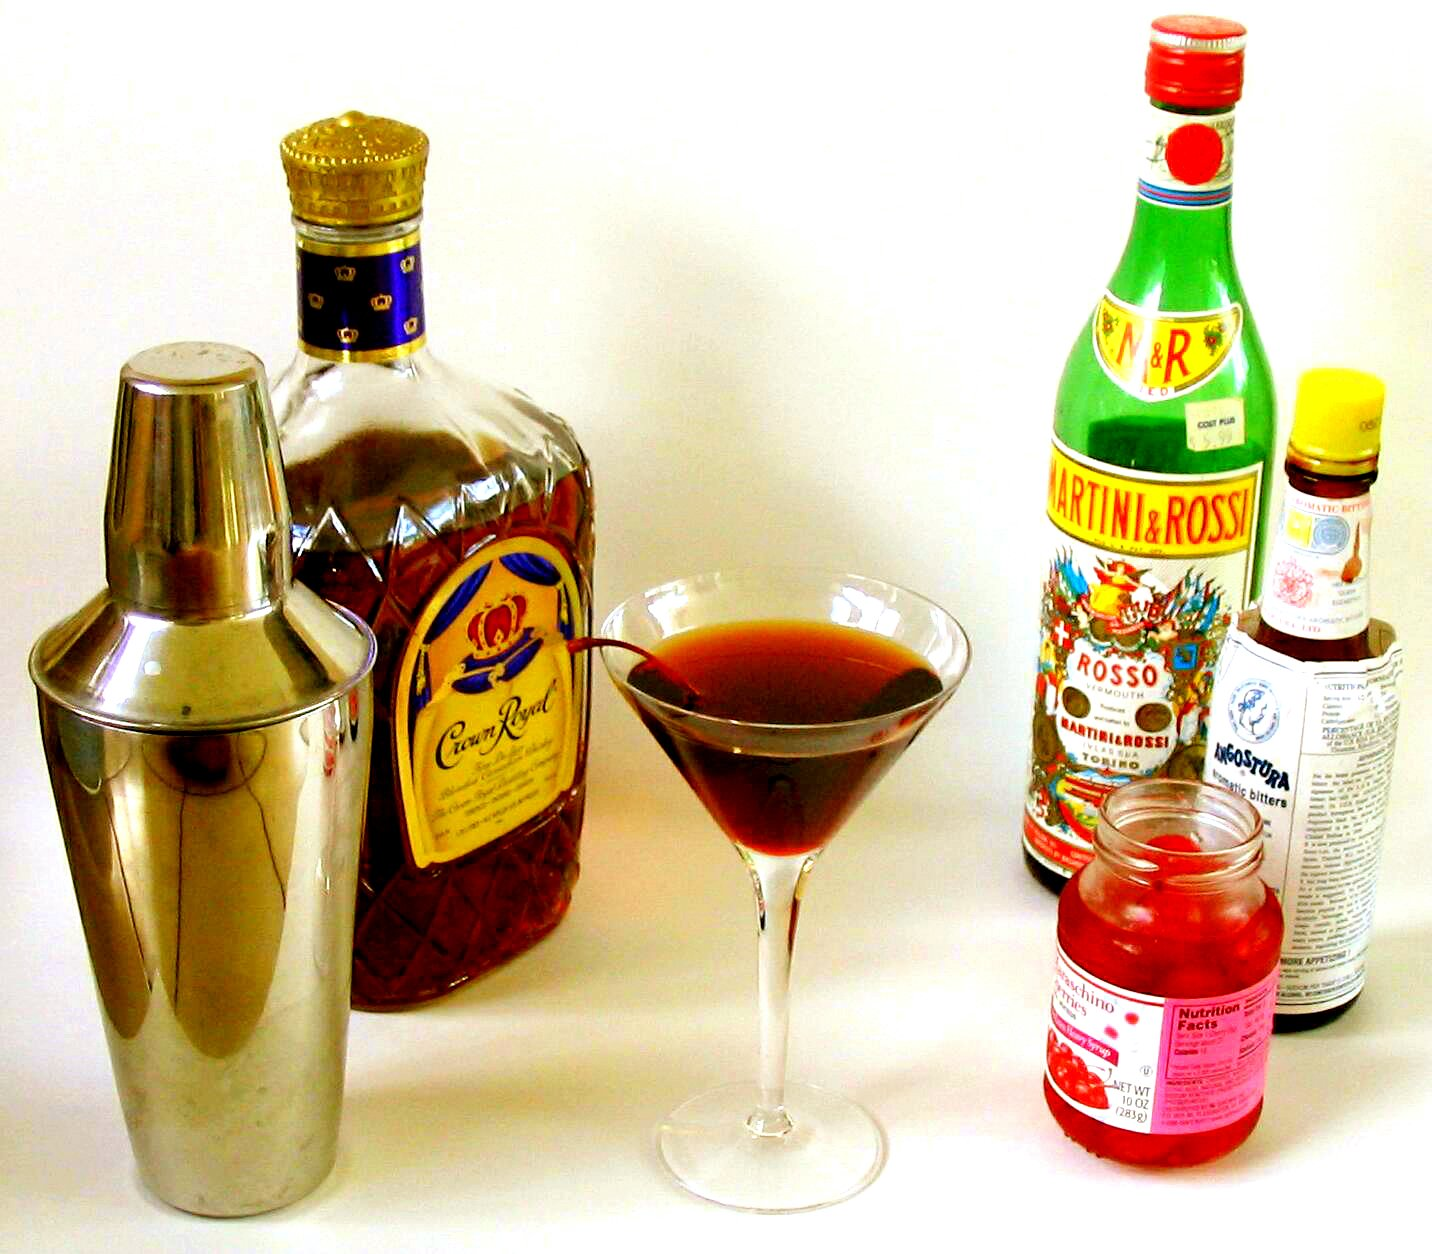 File:Manhattan Cocktail2.jpg - Wikipedia, the free encyclopedia